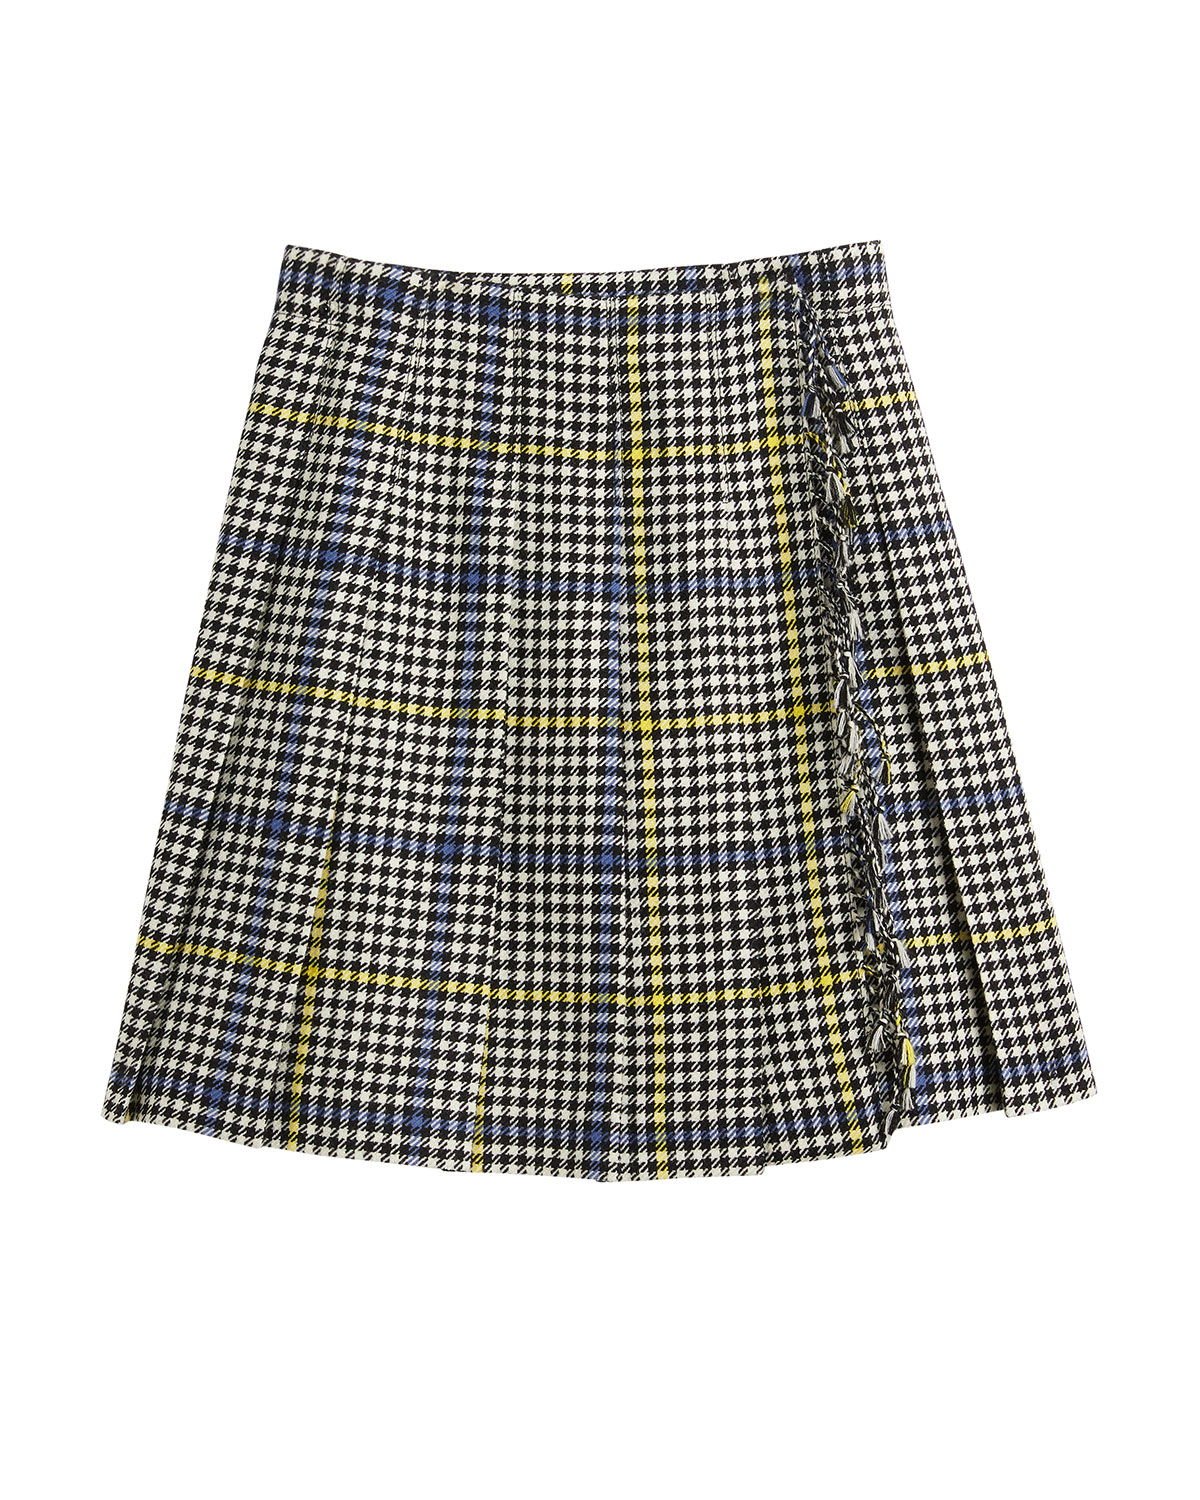 Burberry Skirts KLORRIAN WOOL HOUNDSTOOTH CHECK SKIRT